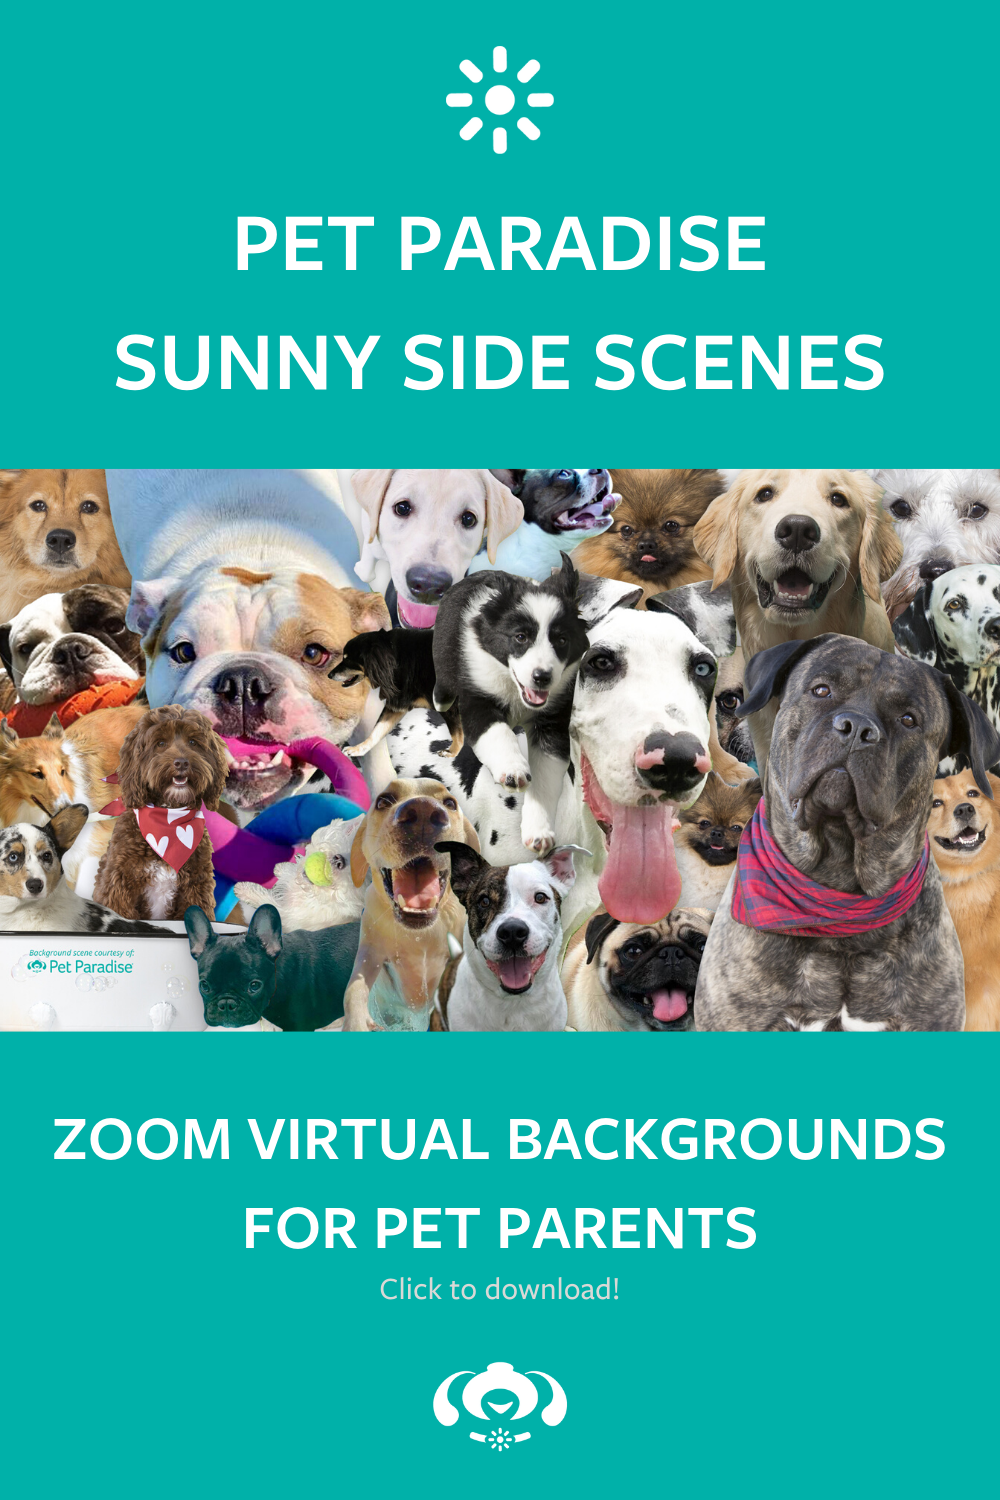 Free Pet Zoom Virtual Backgrounds in 2020 Pet paradise